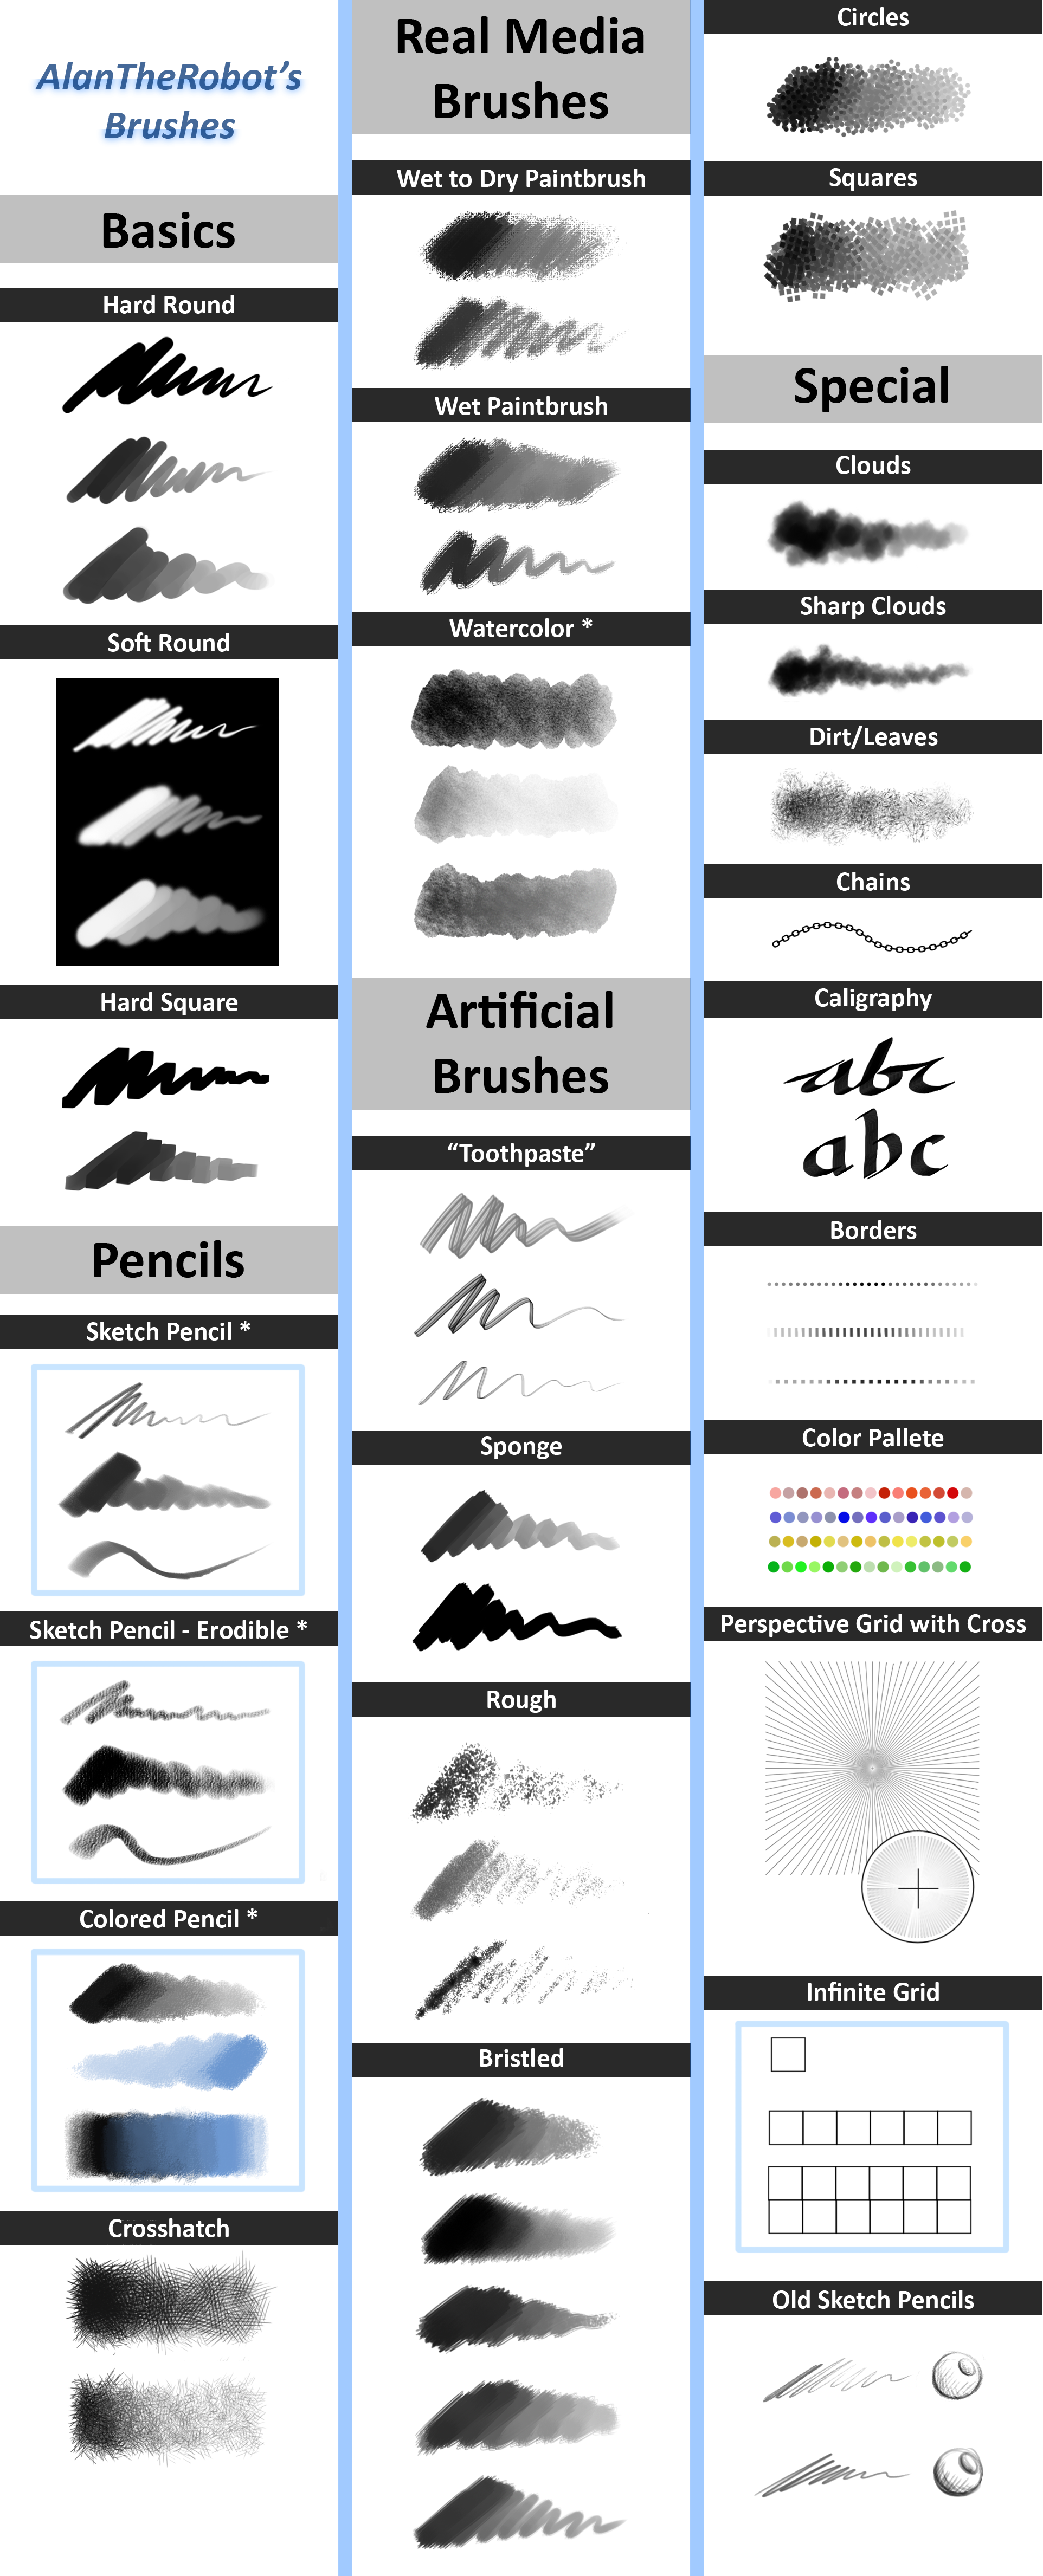 AlanTheRobot's Brushes (ALL Versions - Tested) by AlanTheRobot